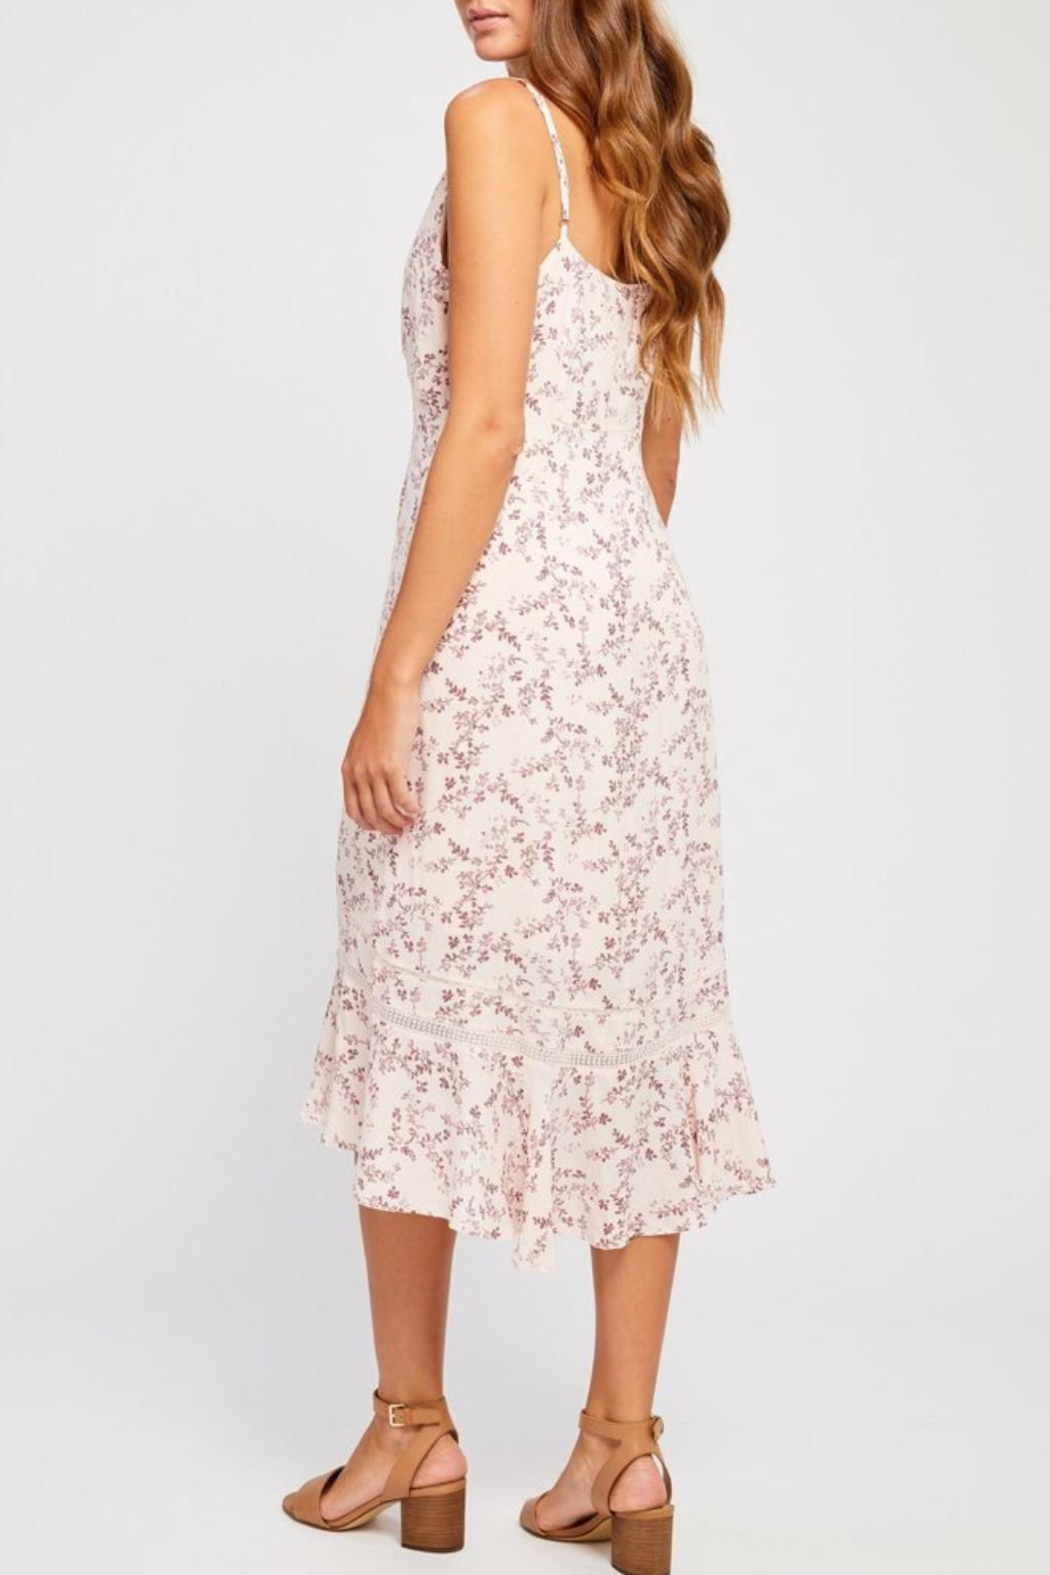 Gentle Fawn Pink Floral Dress - Side Cropped Image